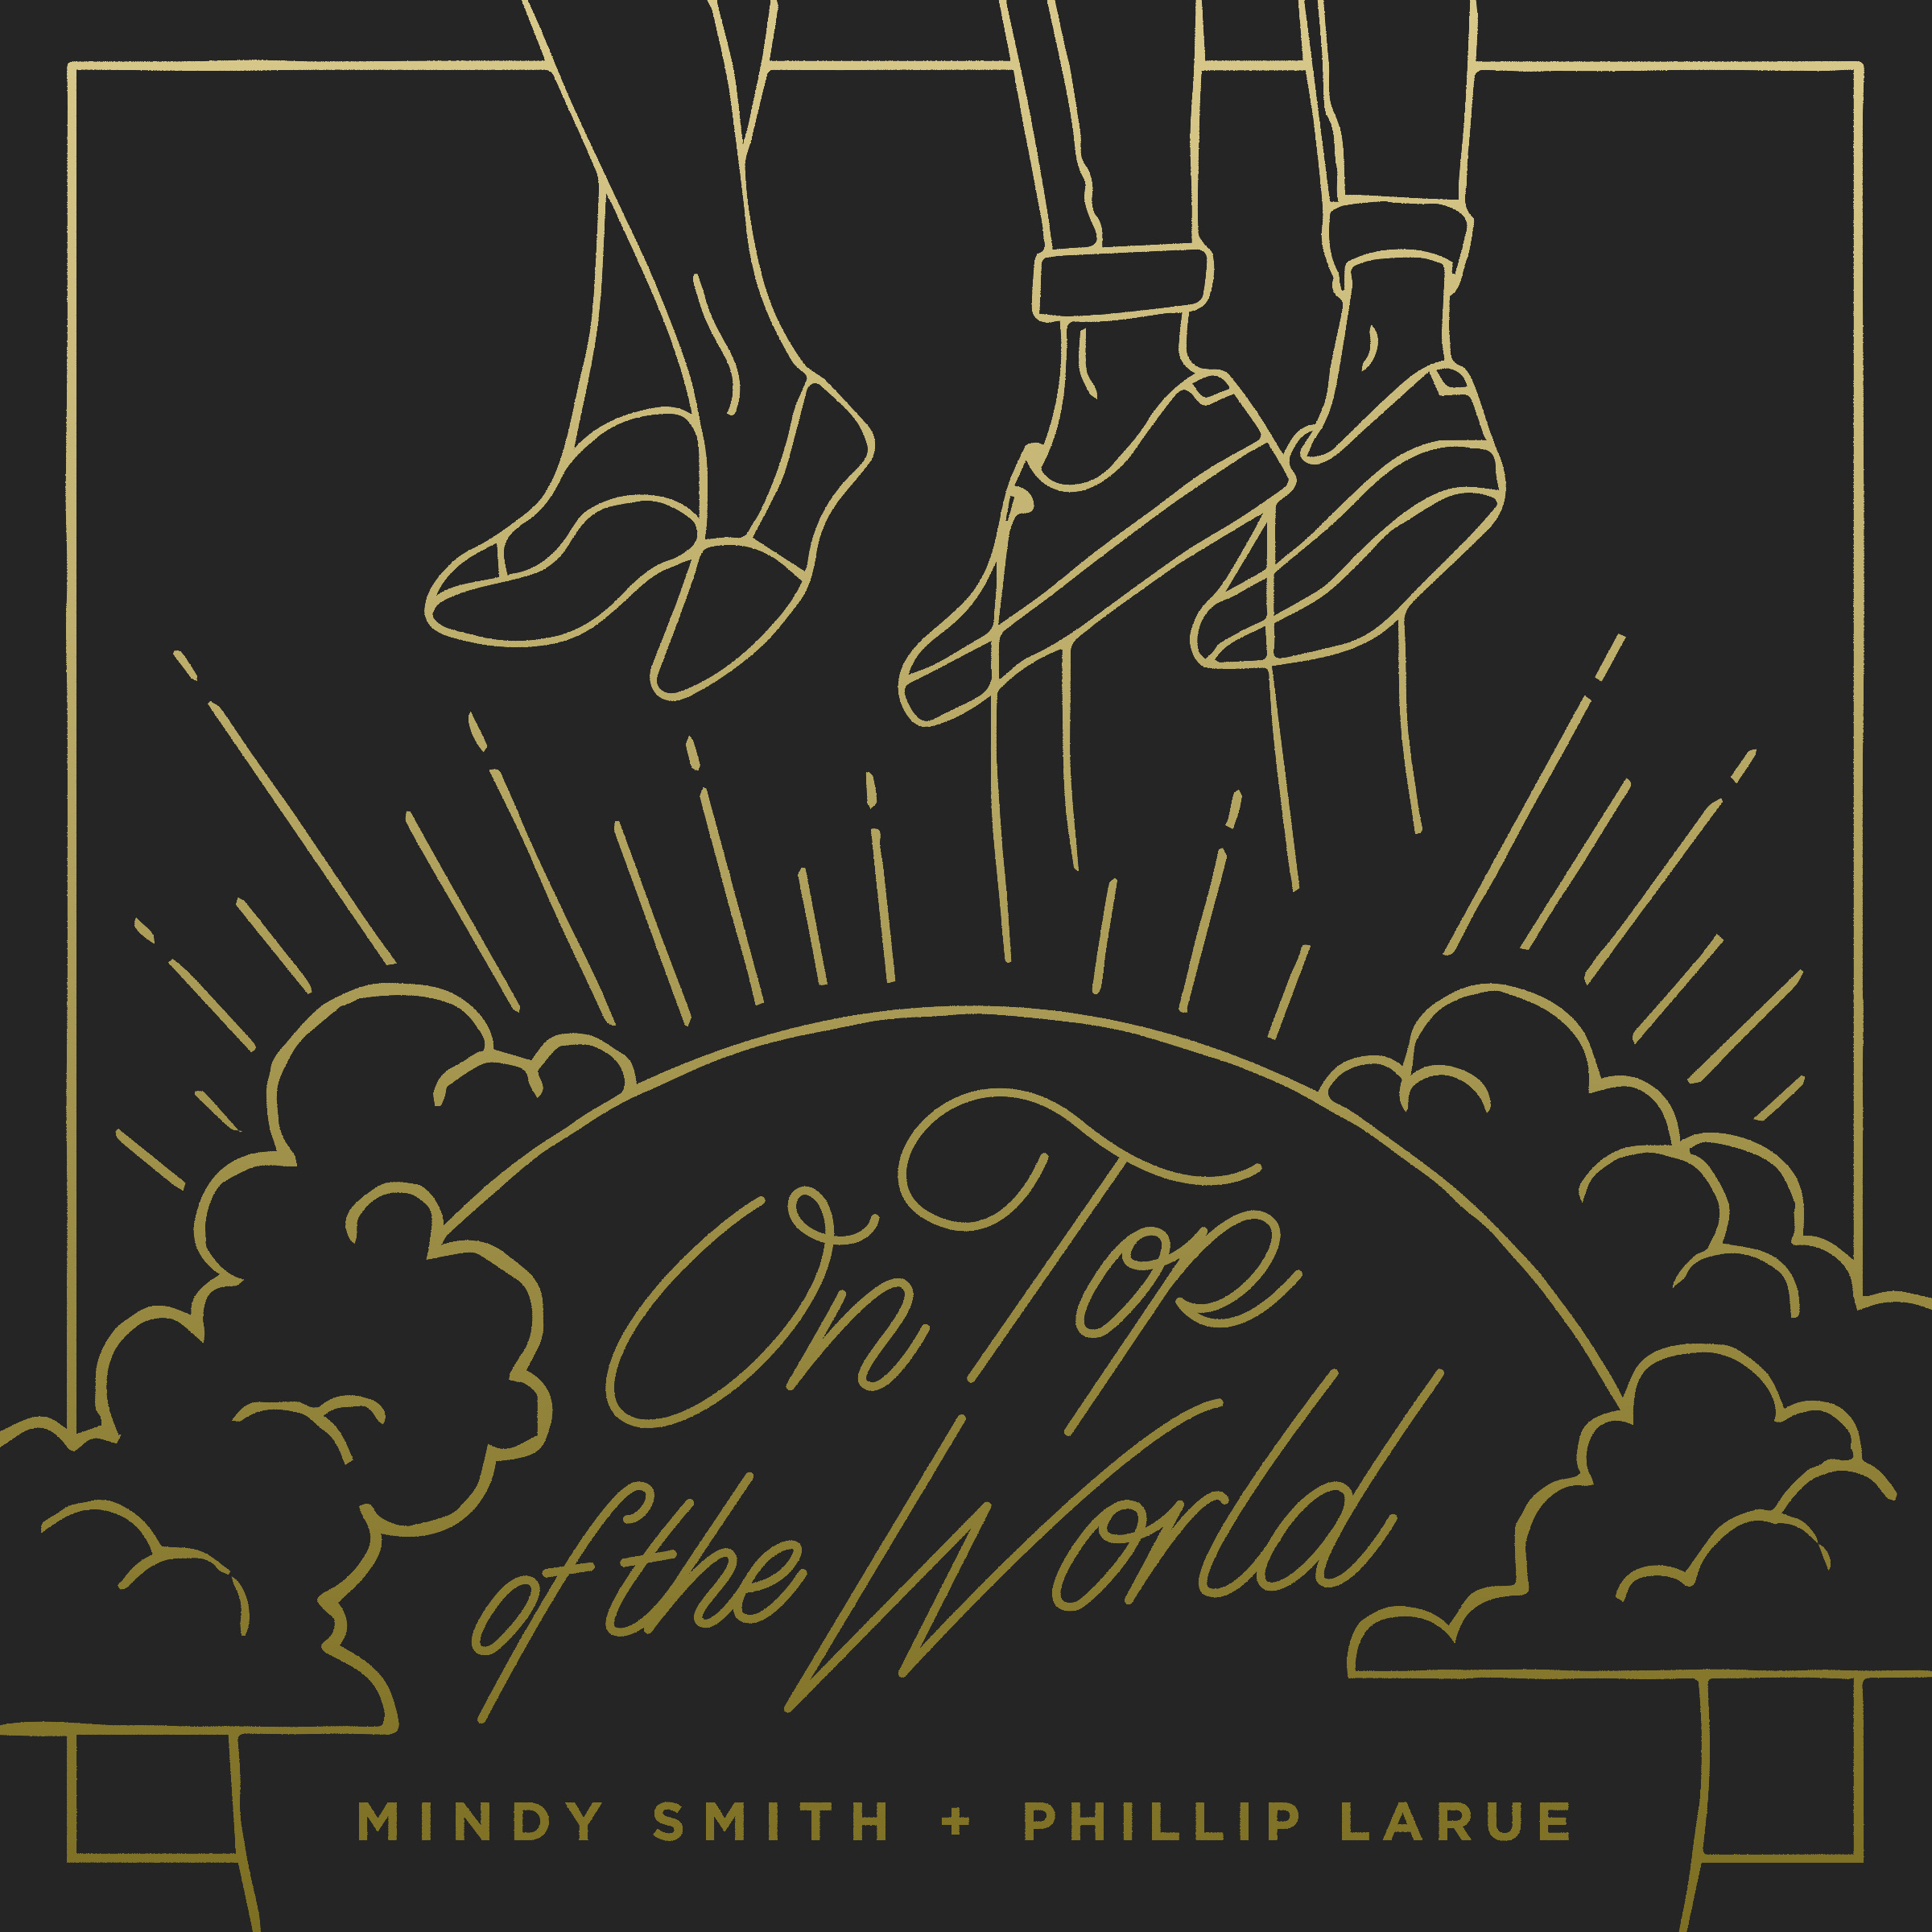 On Top of the World Album Art